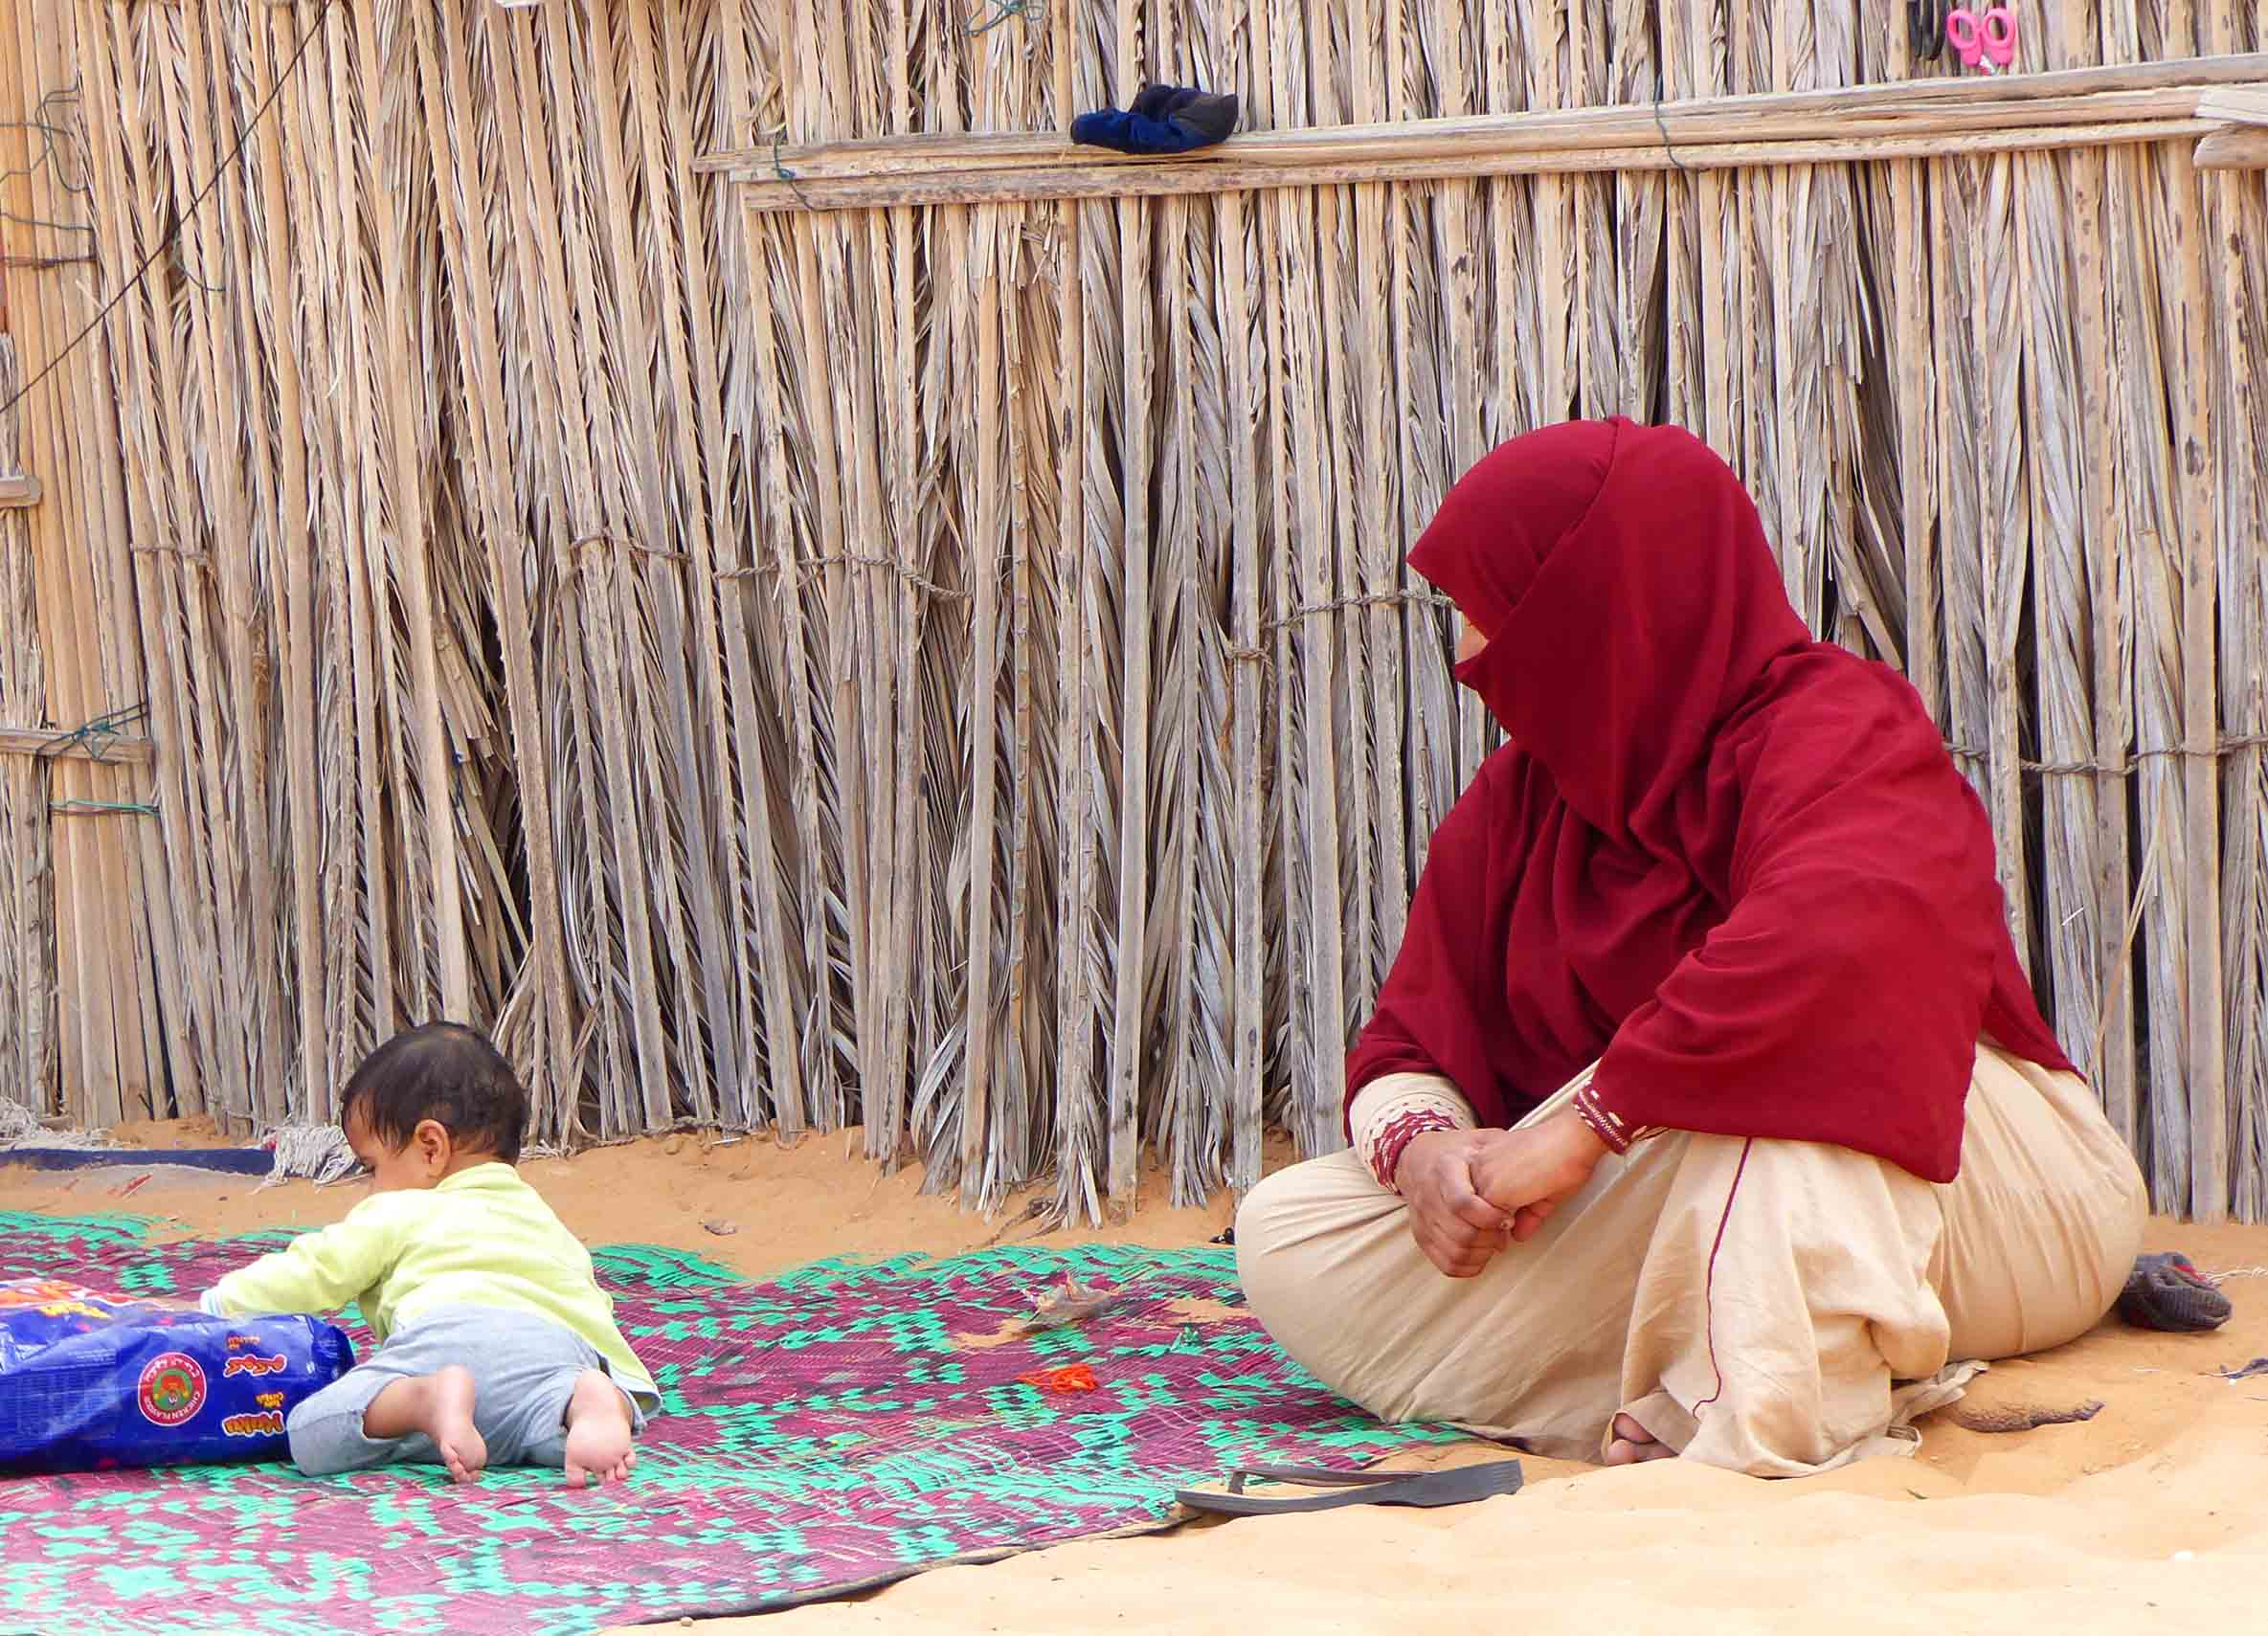 Lady in red hijab watching child playing